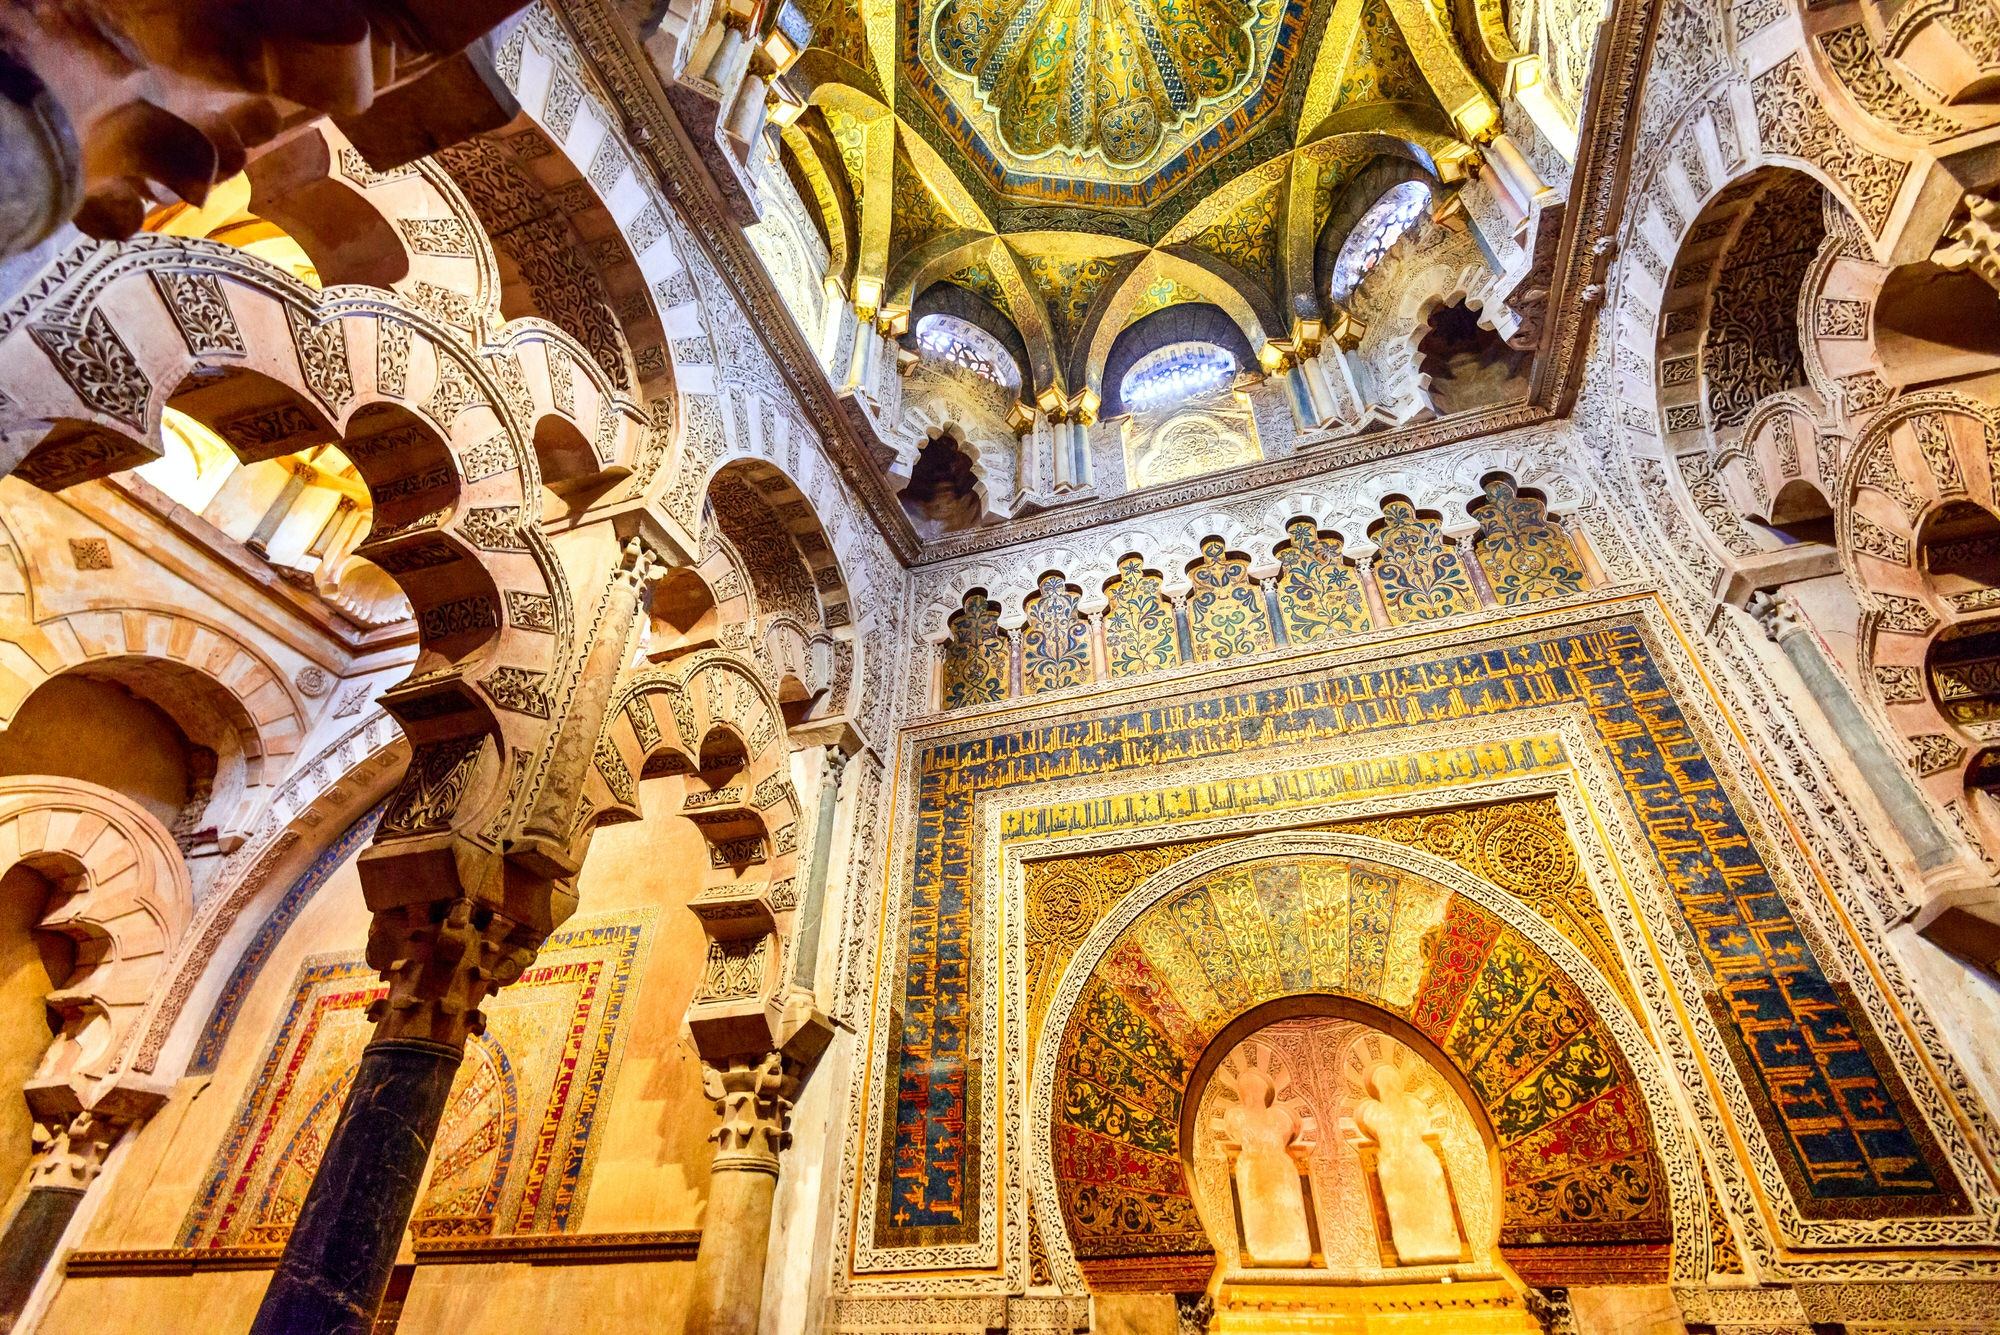 The interior of Córdoba's mosque turned cathedral